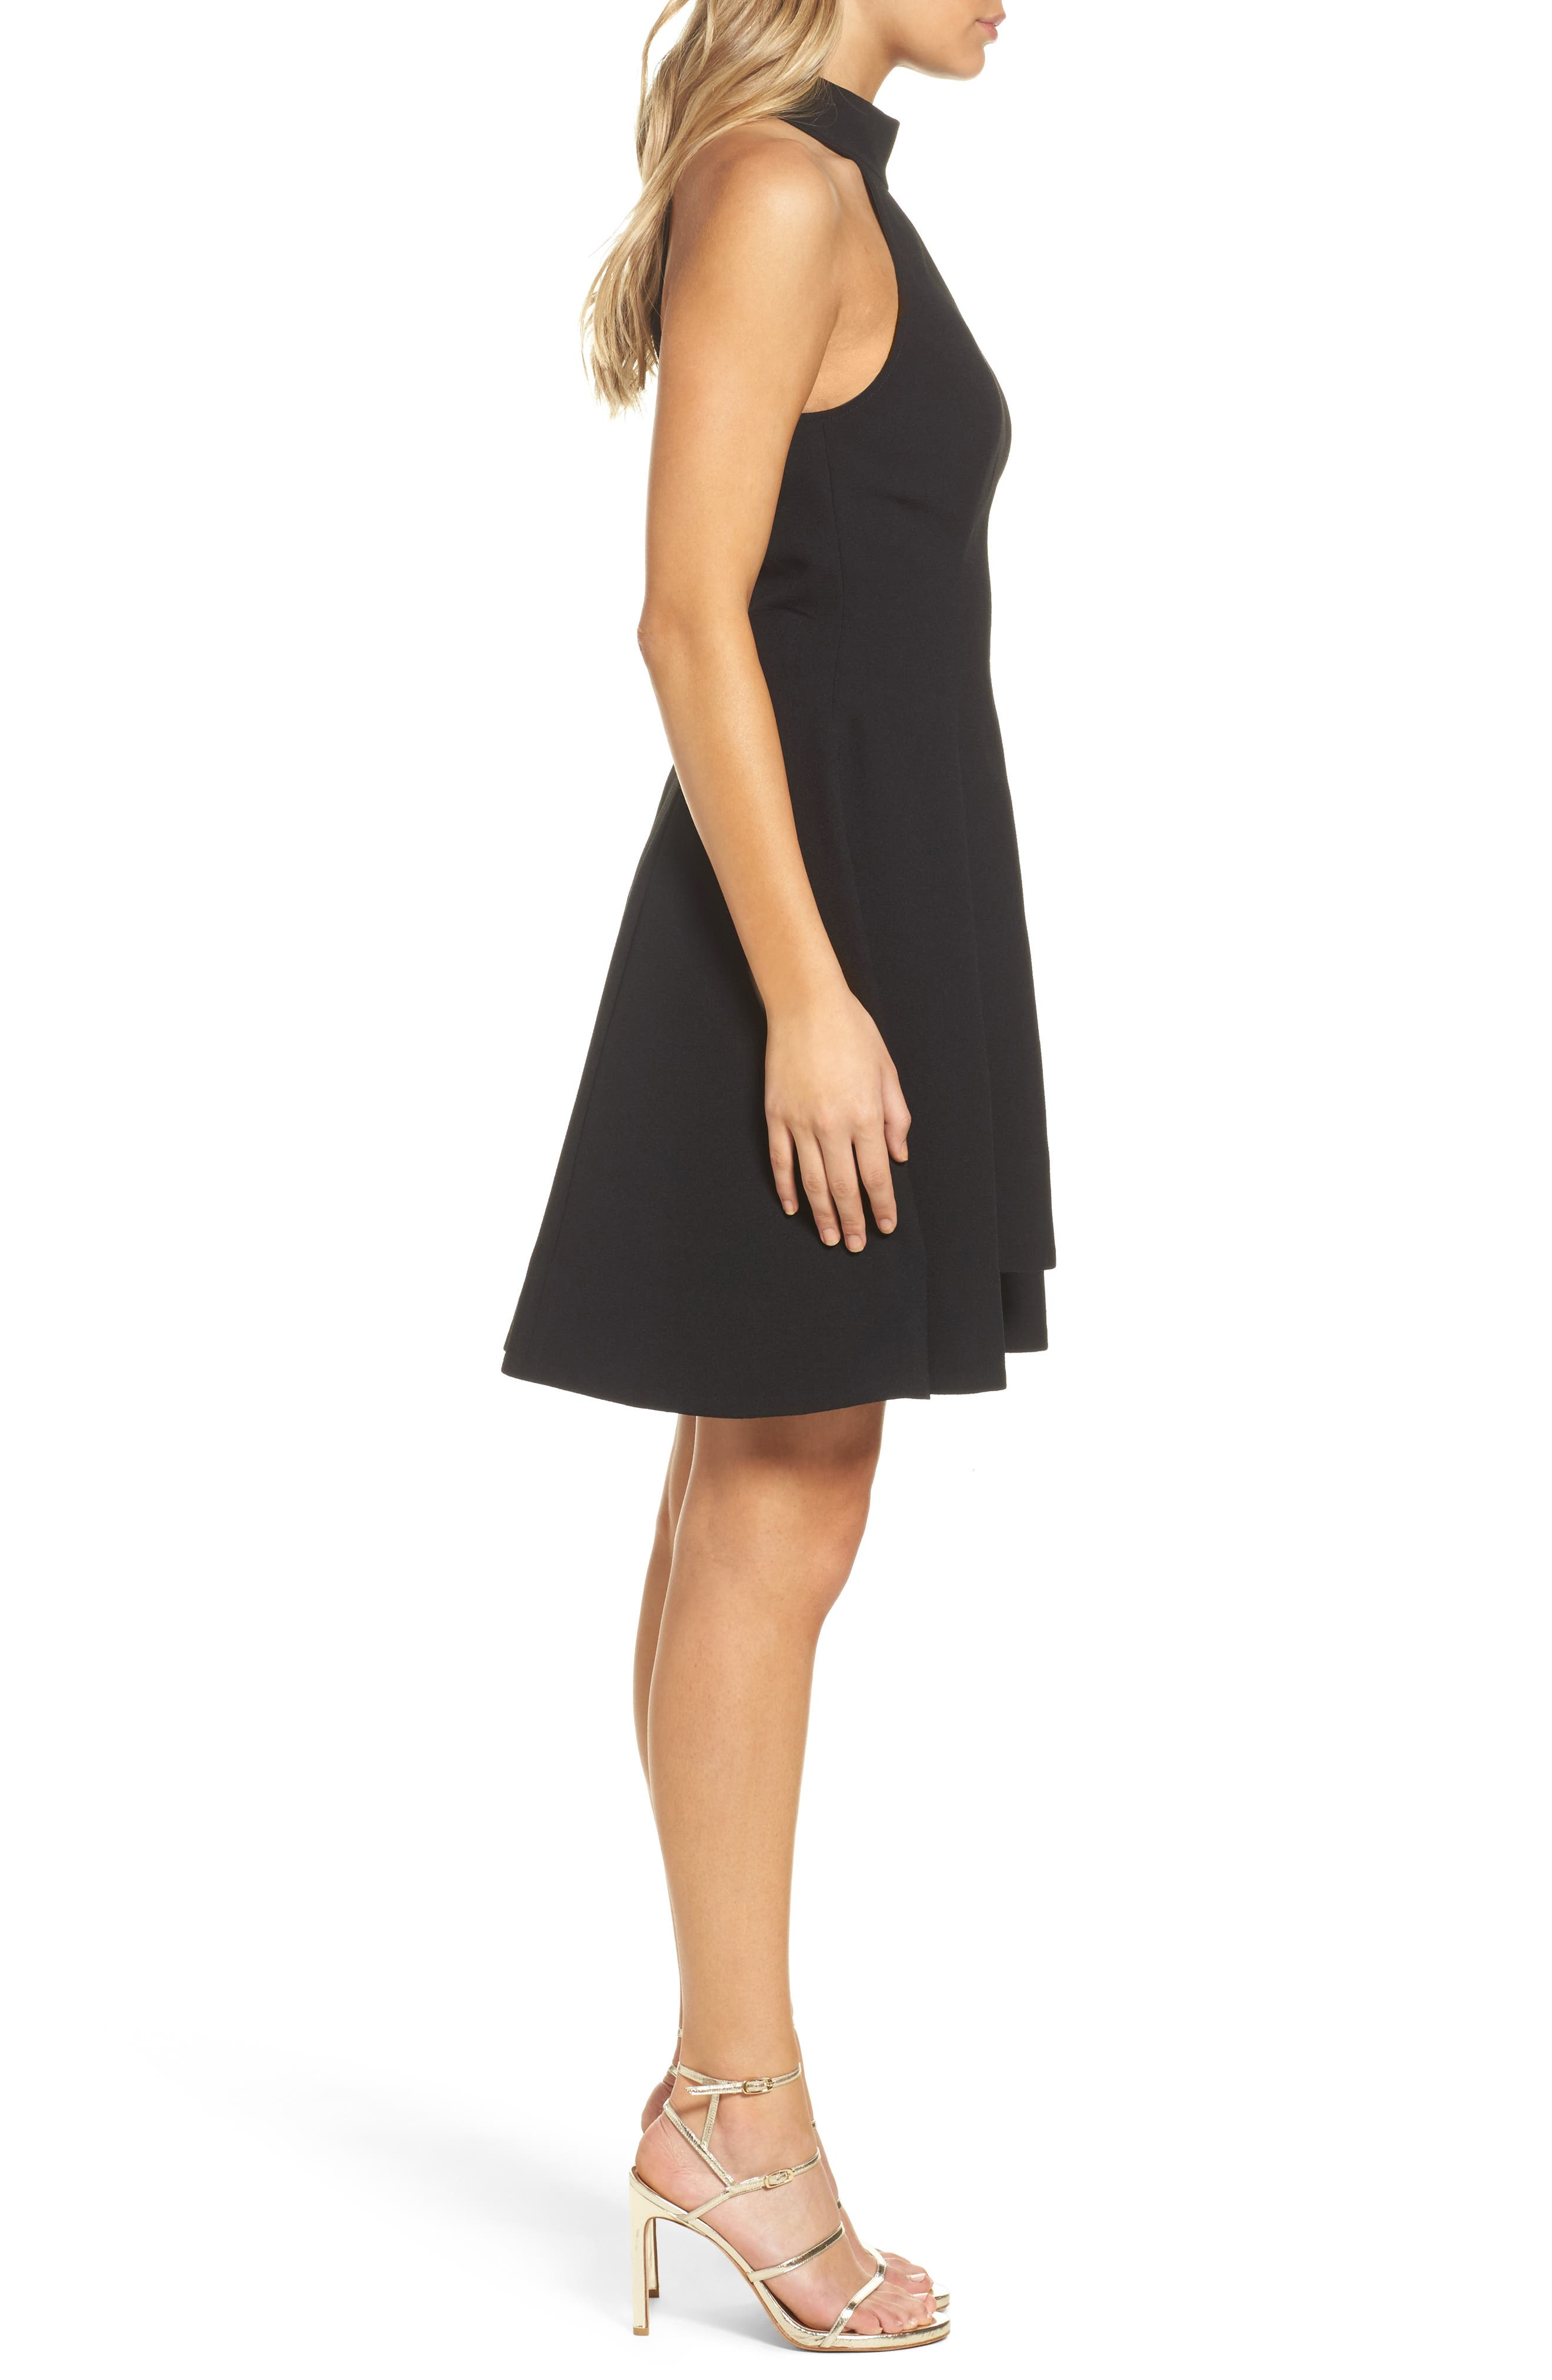 Fusion Halter Style Fit & Flare Dress,                             Alternate thumbnail 3, color,                             001